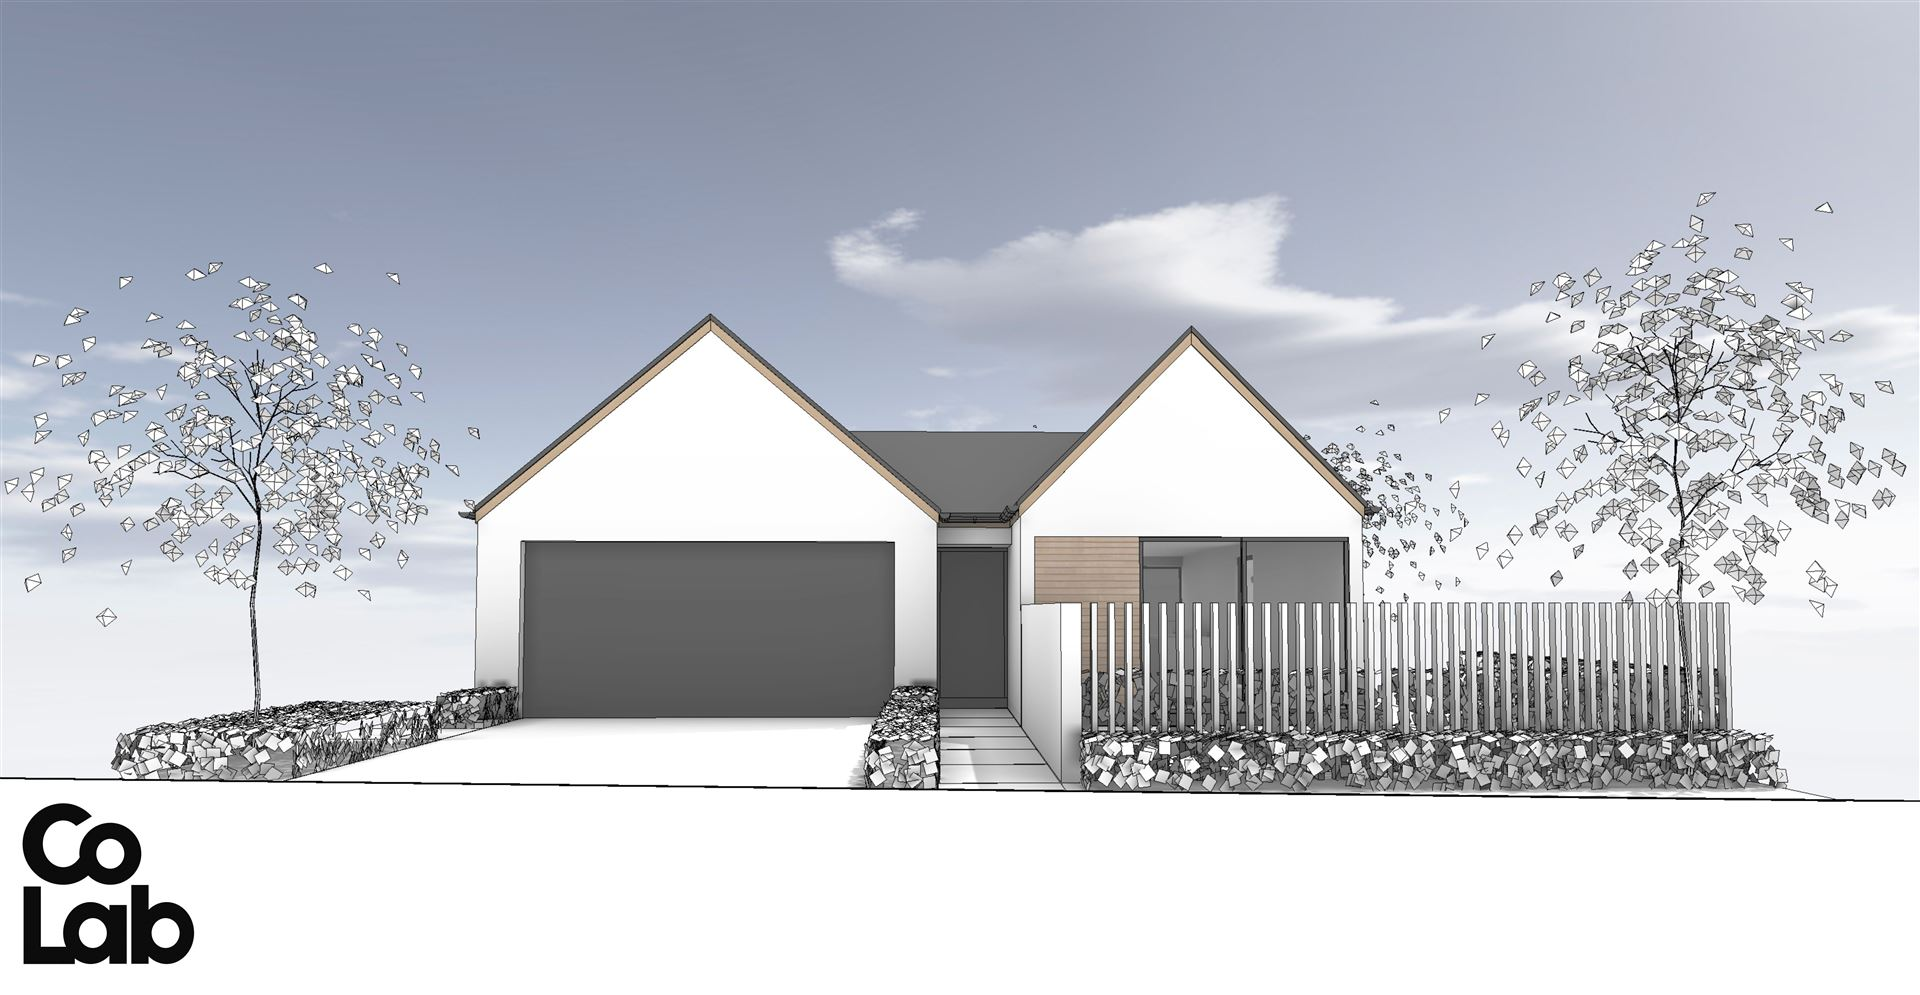 Lot 236 Milns Park, Halswell